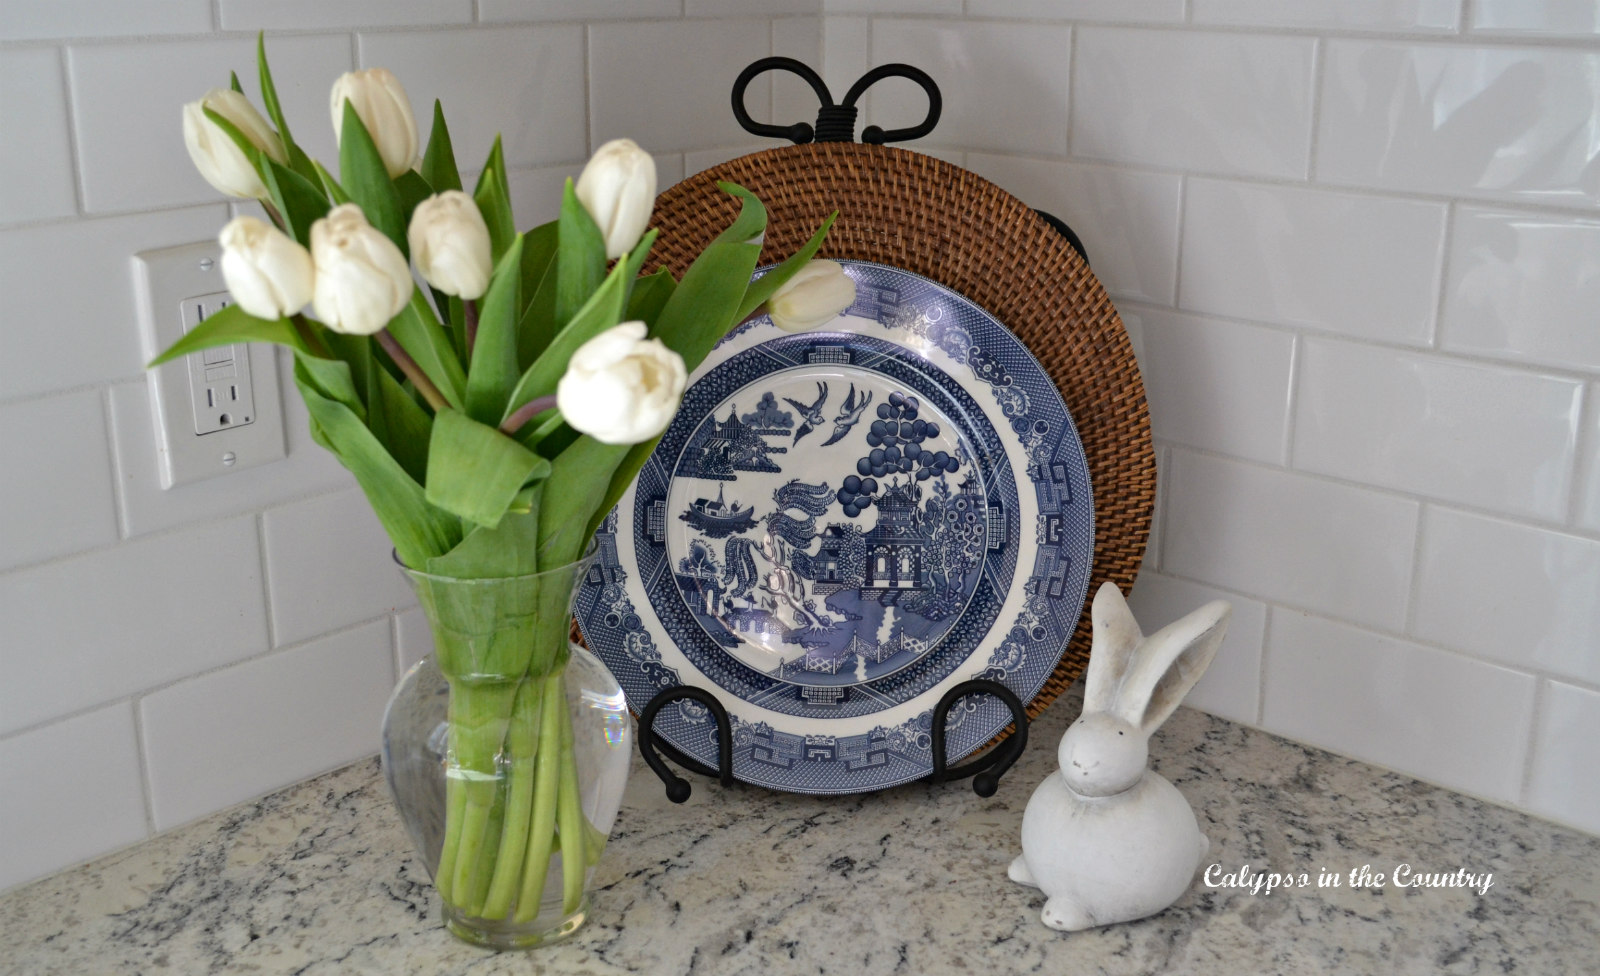 Blue willow plate and white tulips for spring